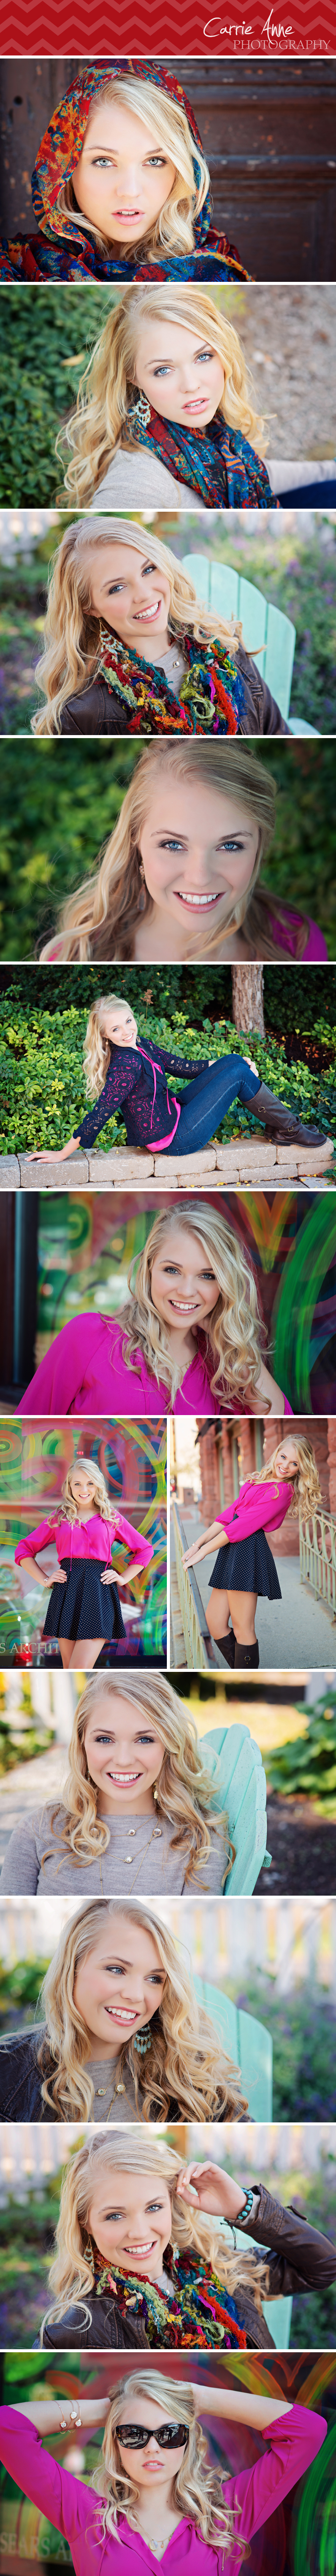 Grand Rapids Senior Photographer, Hip, urban senior sessions, Stunning images by Carrie Anne Photography